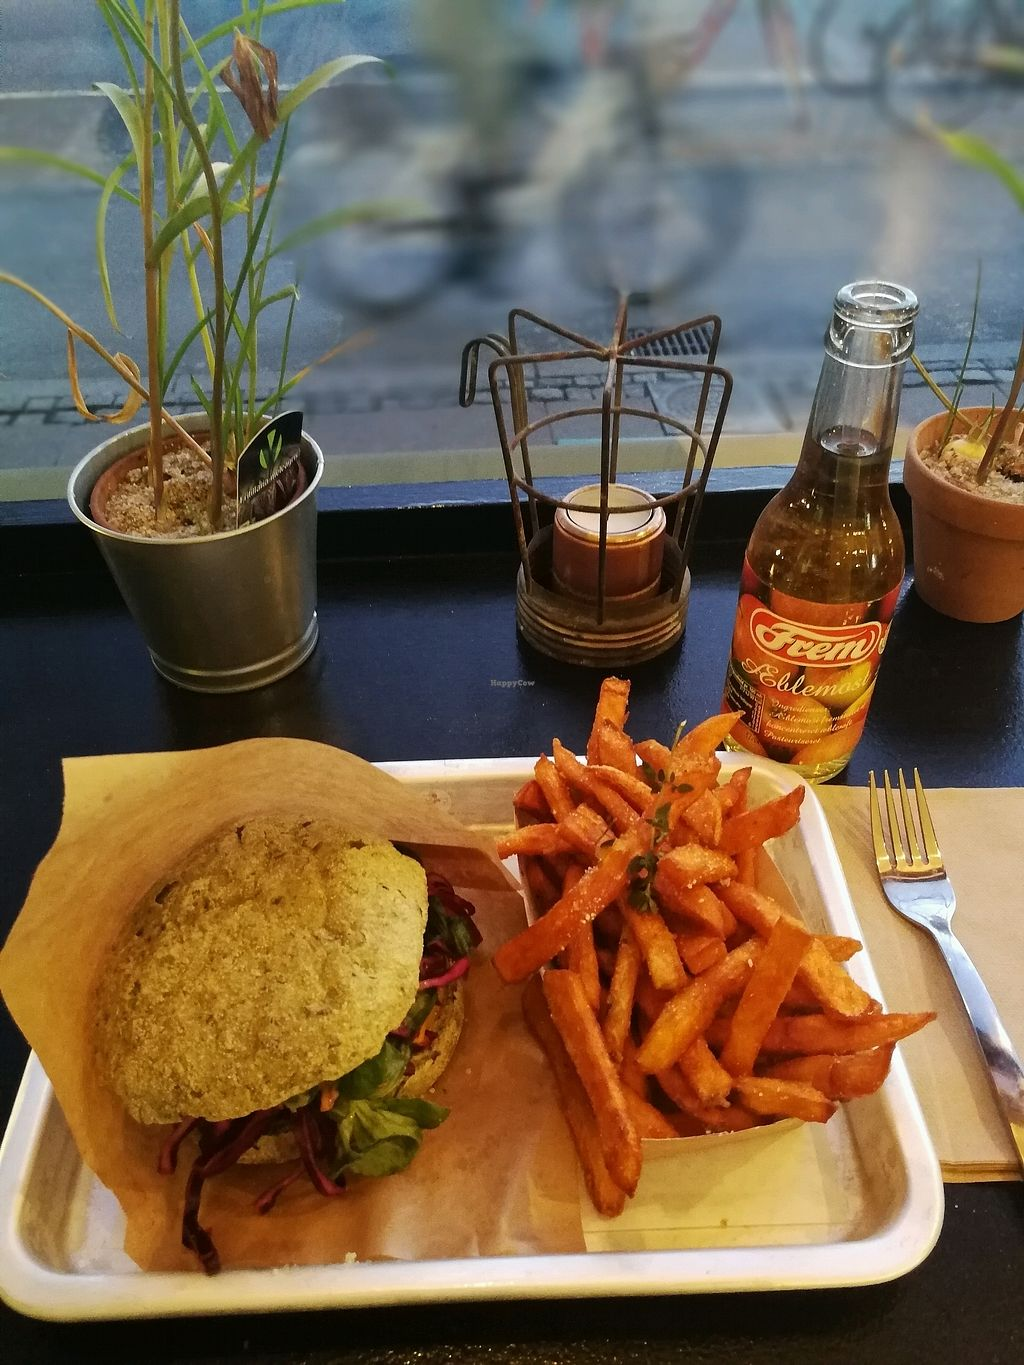 """Photo of GreenBurger - Frederiksborggade  by <a href=""""/members/profile/MonicaGomes"""">MonicaGomes</a> <br/>classic burger with sweet potato fries  <br/> February 23, 2018  - <a href='/contact/abuse/image/81101/362693'>Report</a>"""